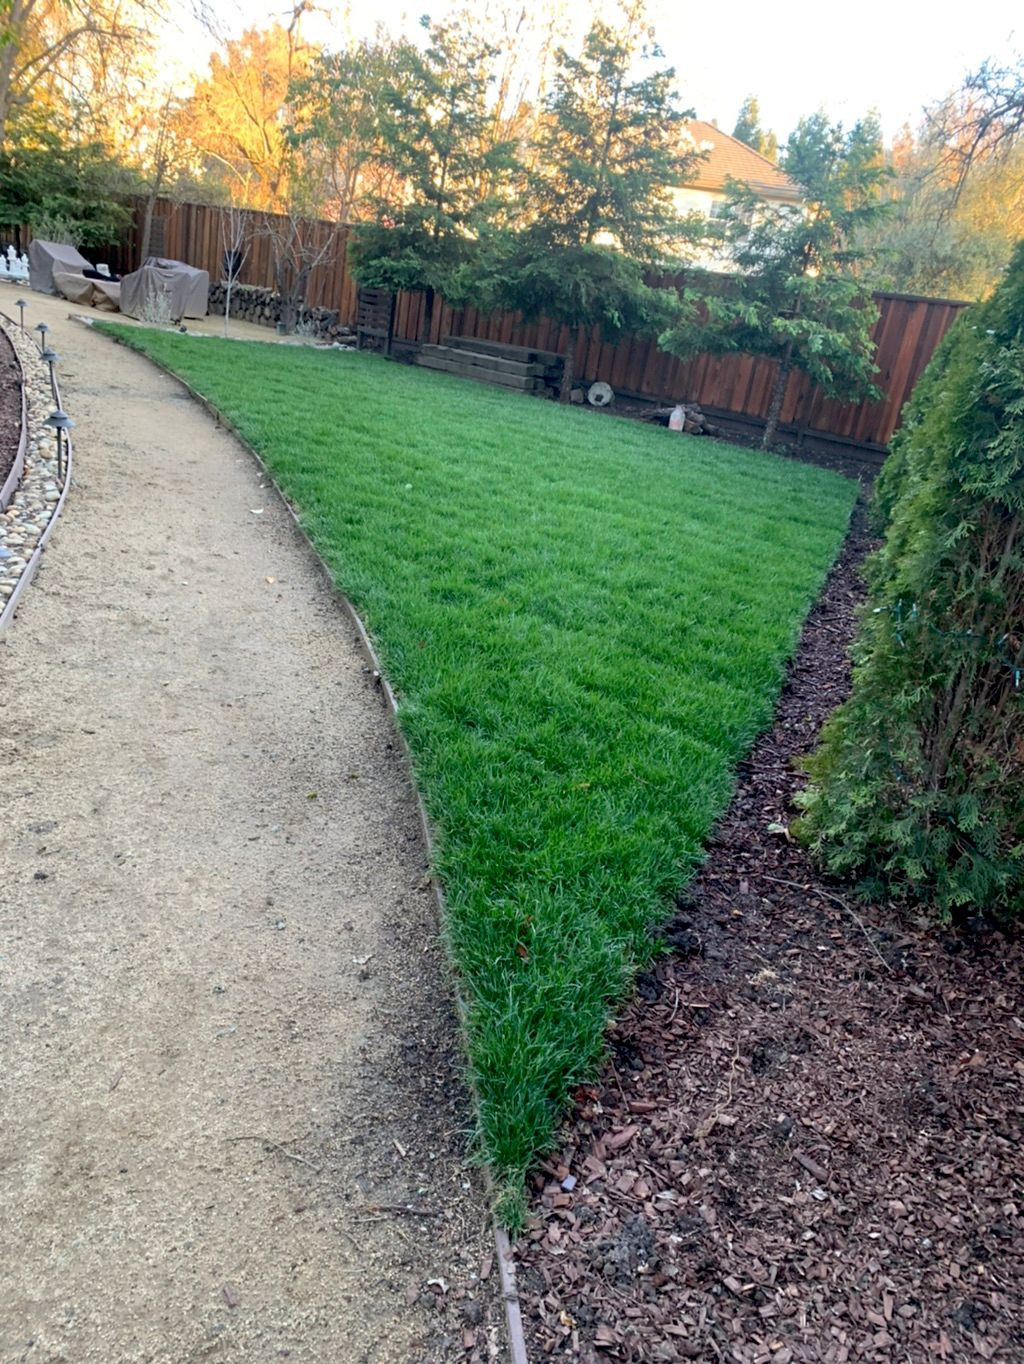 Nicasio's landscaping